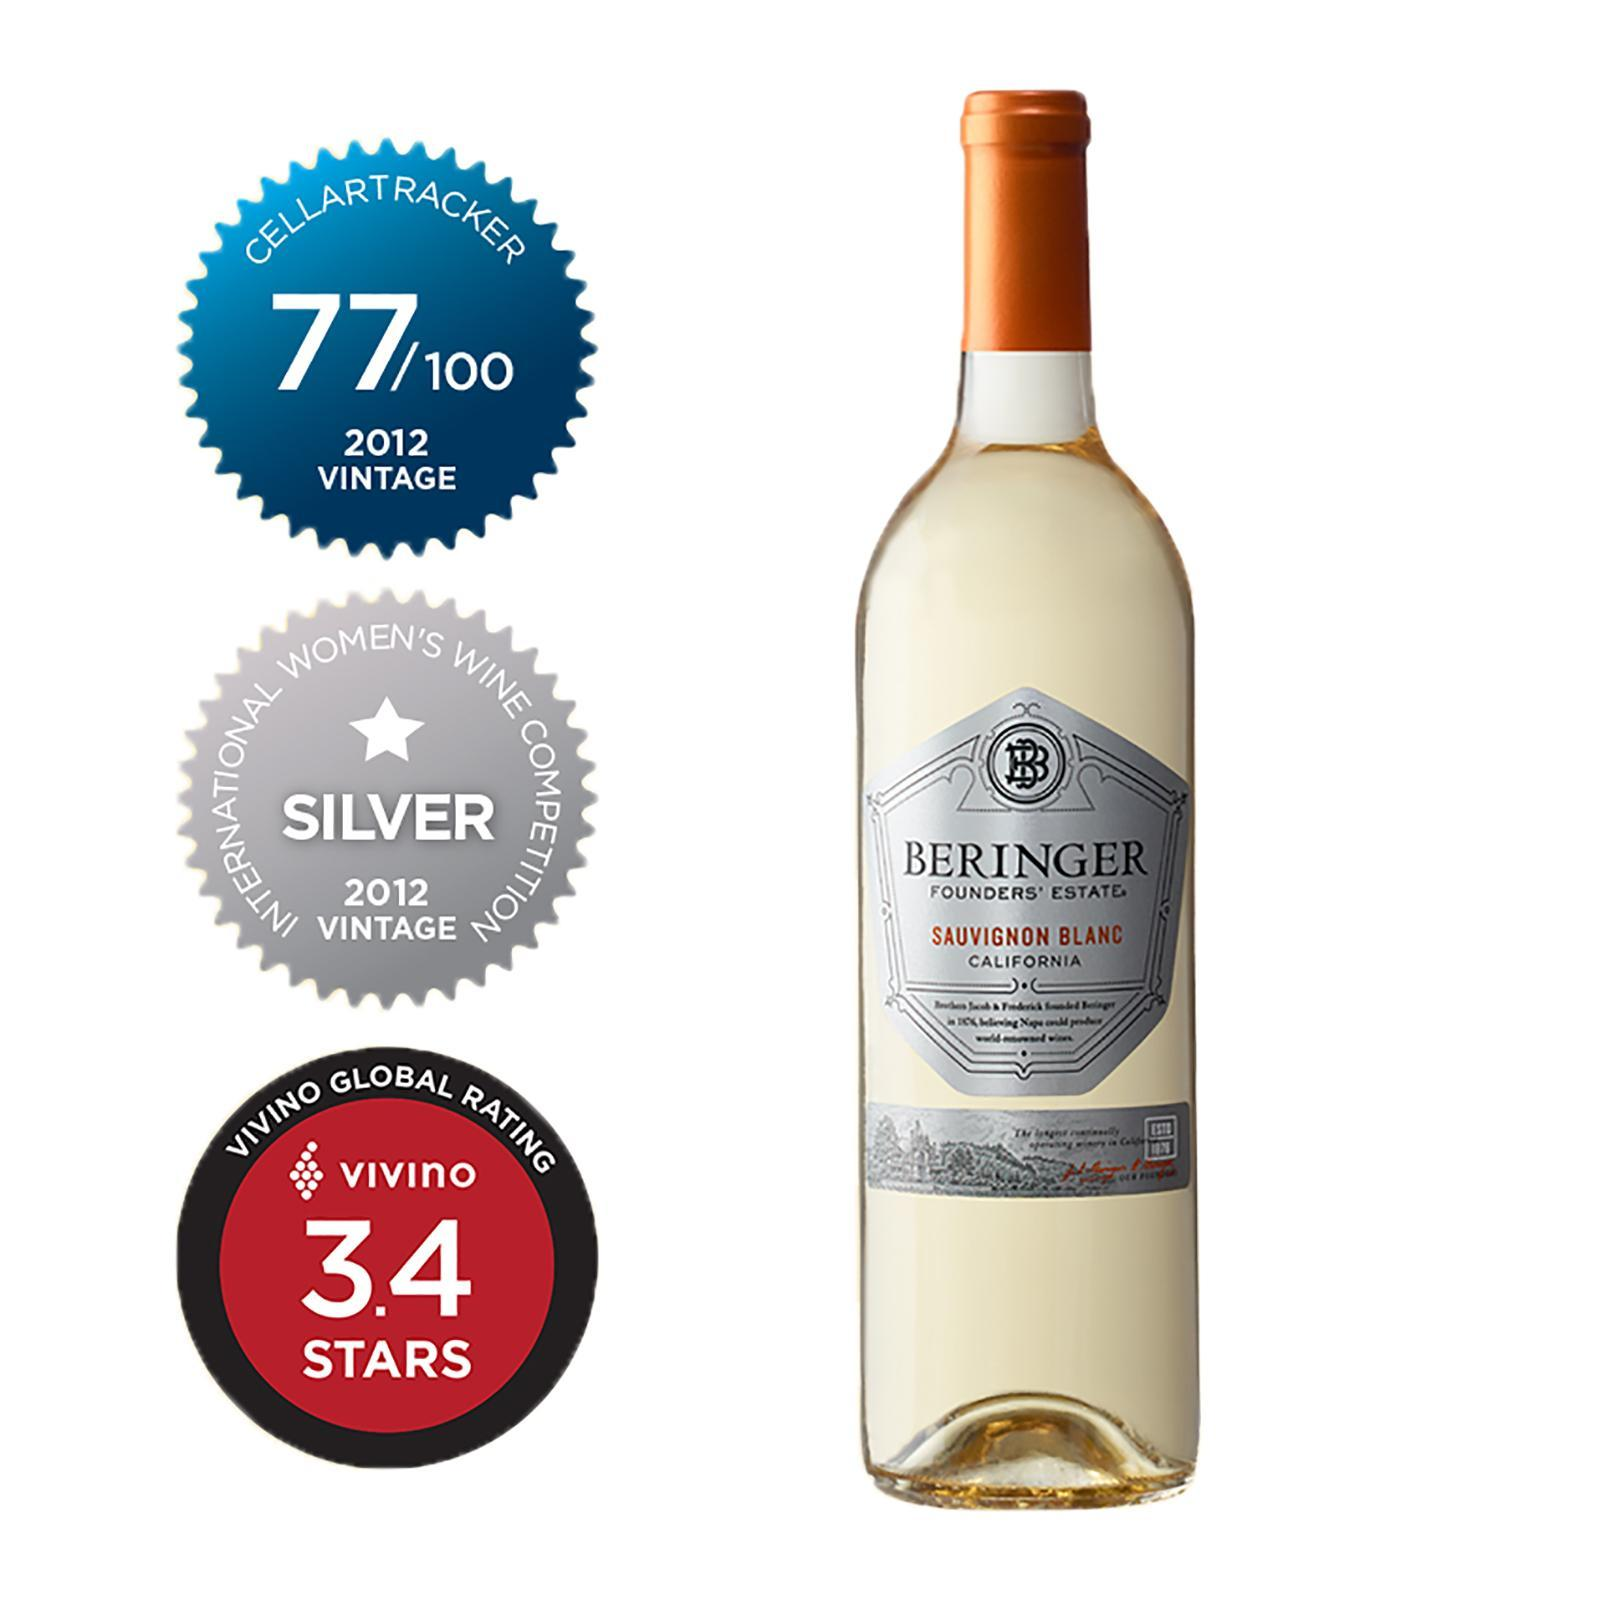 Beringer Sauvignon Blanc Founders Pineapple Flavour - By Wine Collection